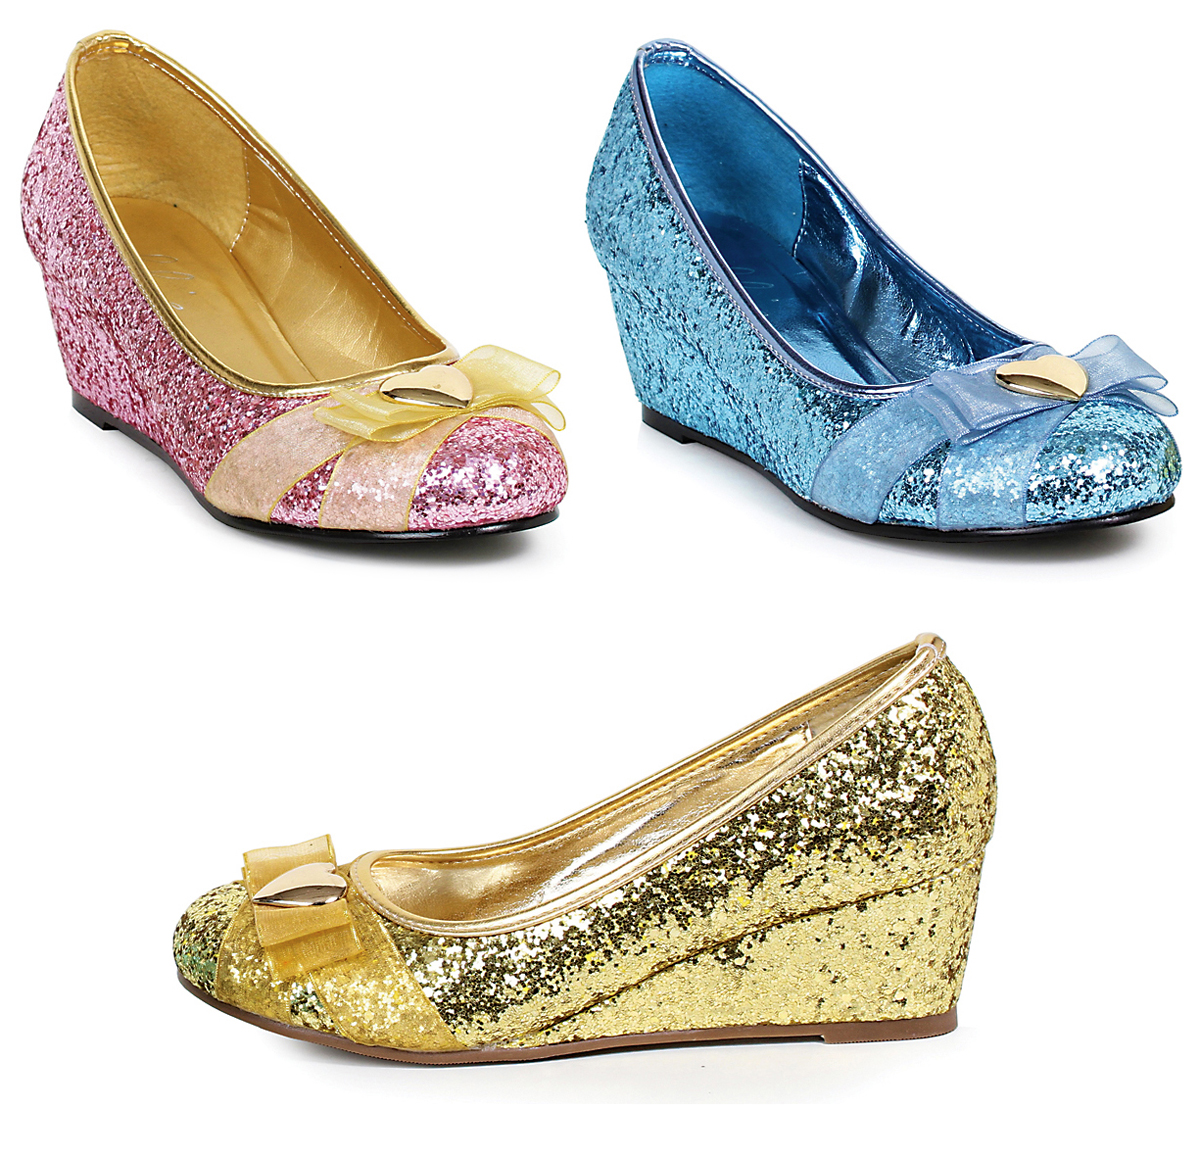 2 Inch Wedge Glitter Princess Pump Shoes a9f97a166516